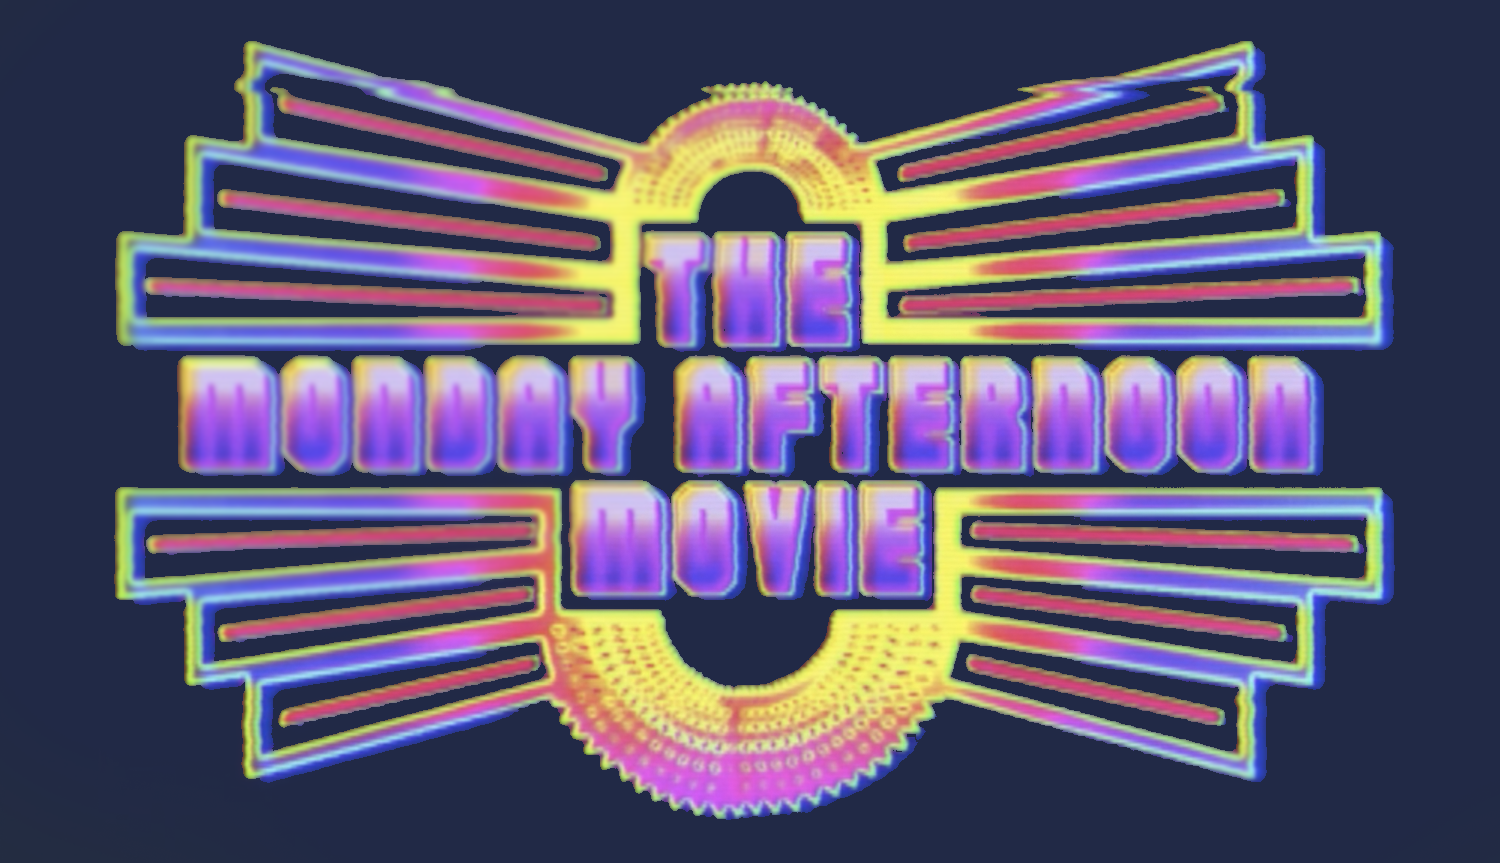 Sam Pancake Presents the Monday Afternoon Movie